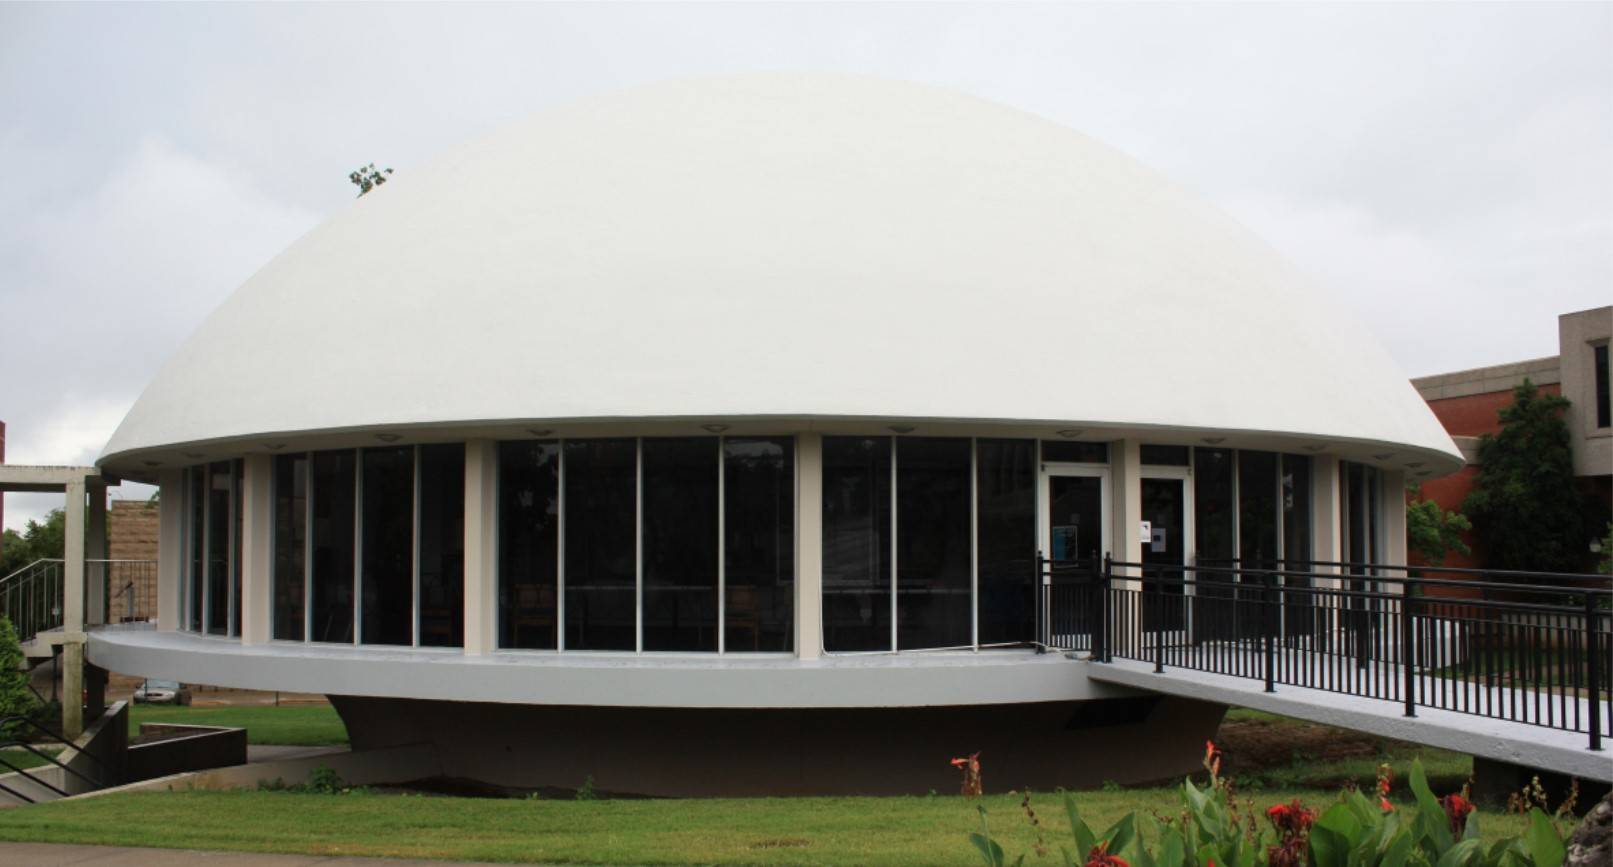 Hardin Planetarium received a renovation over the summer.